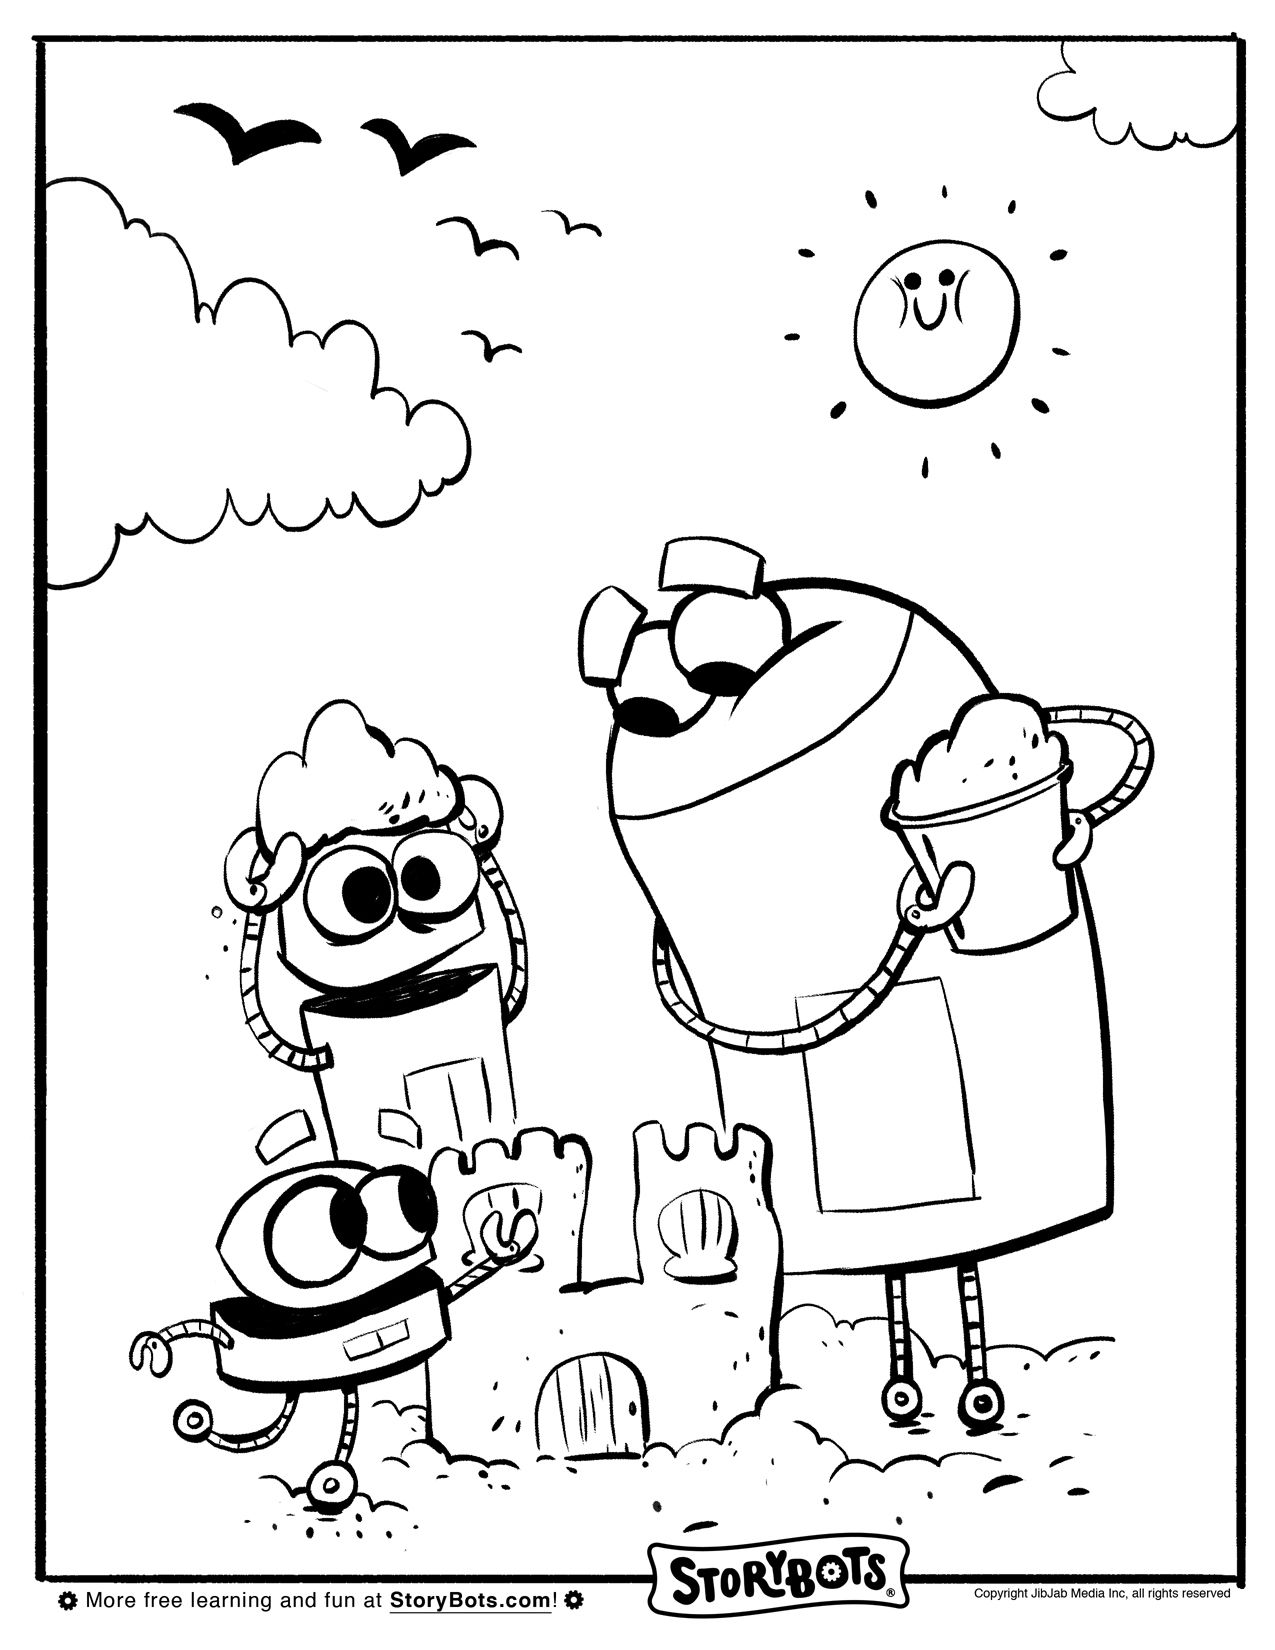 storybots coloring pages StoryBots Sandcastle Coloring Sheet | Summer Activity Sheets  storybots coloring pages